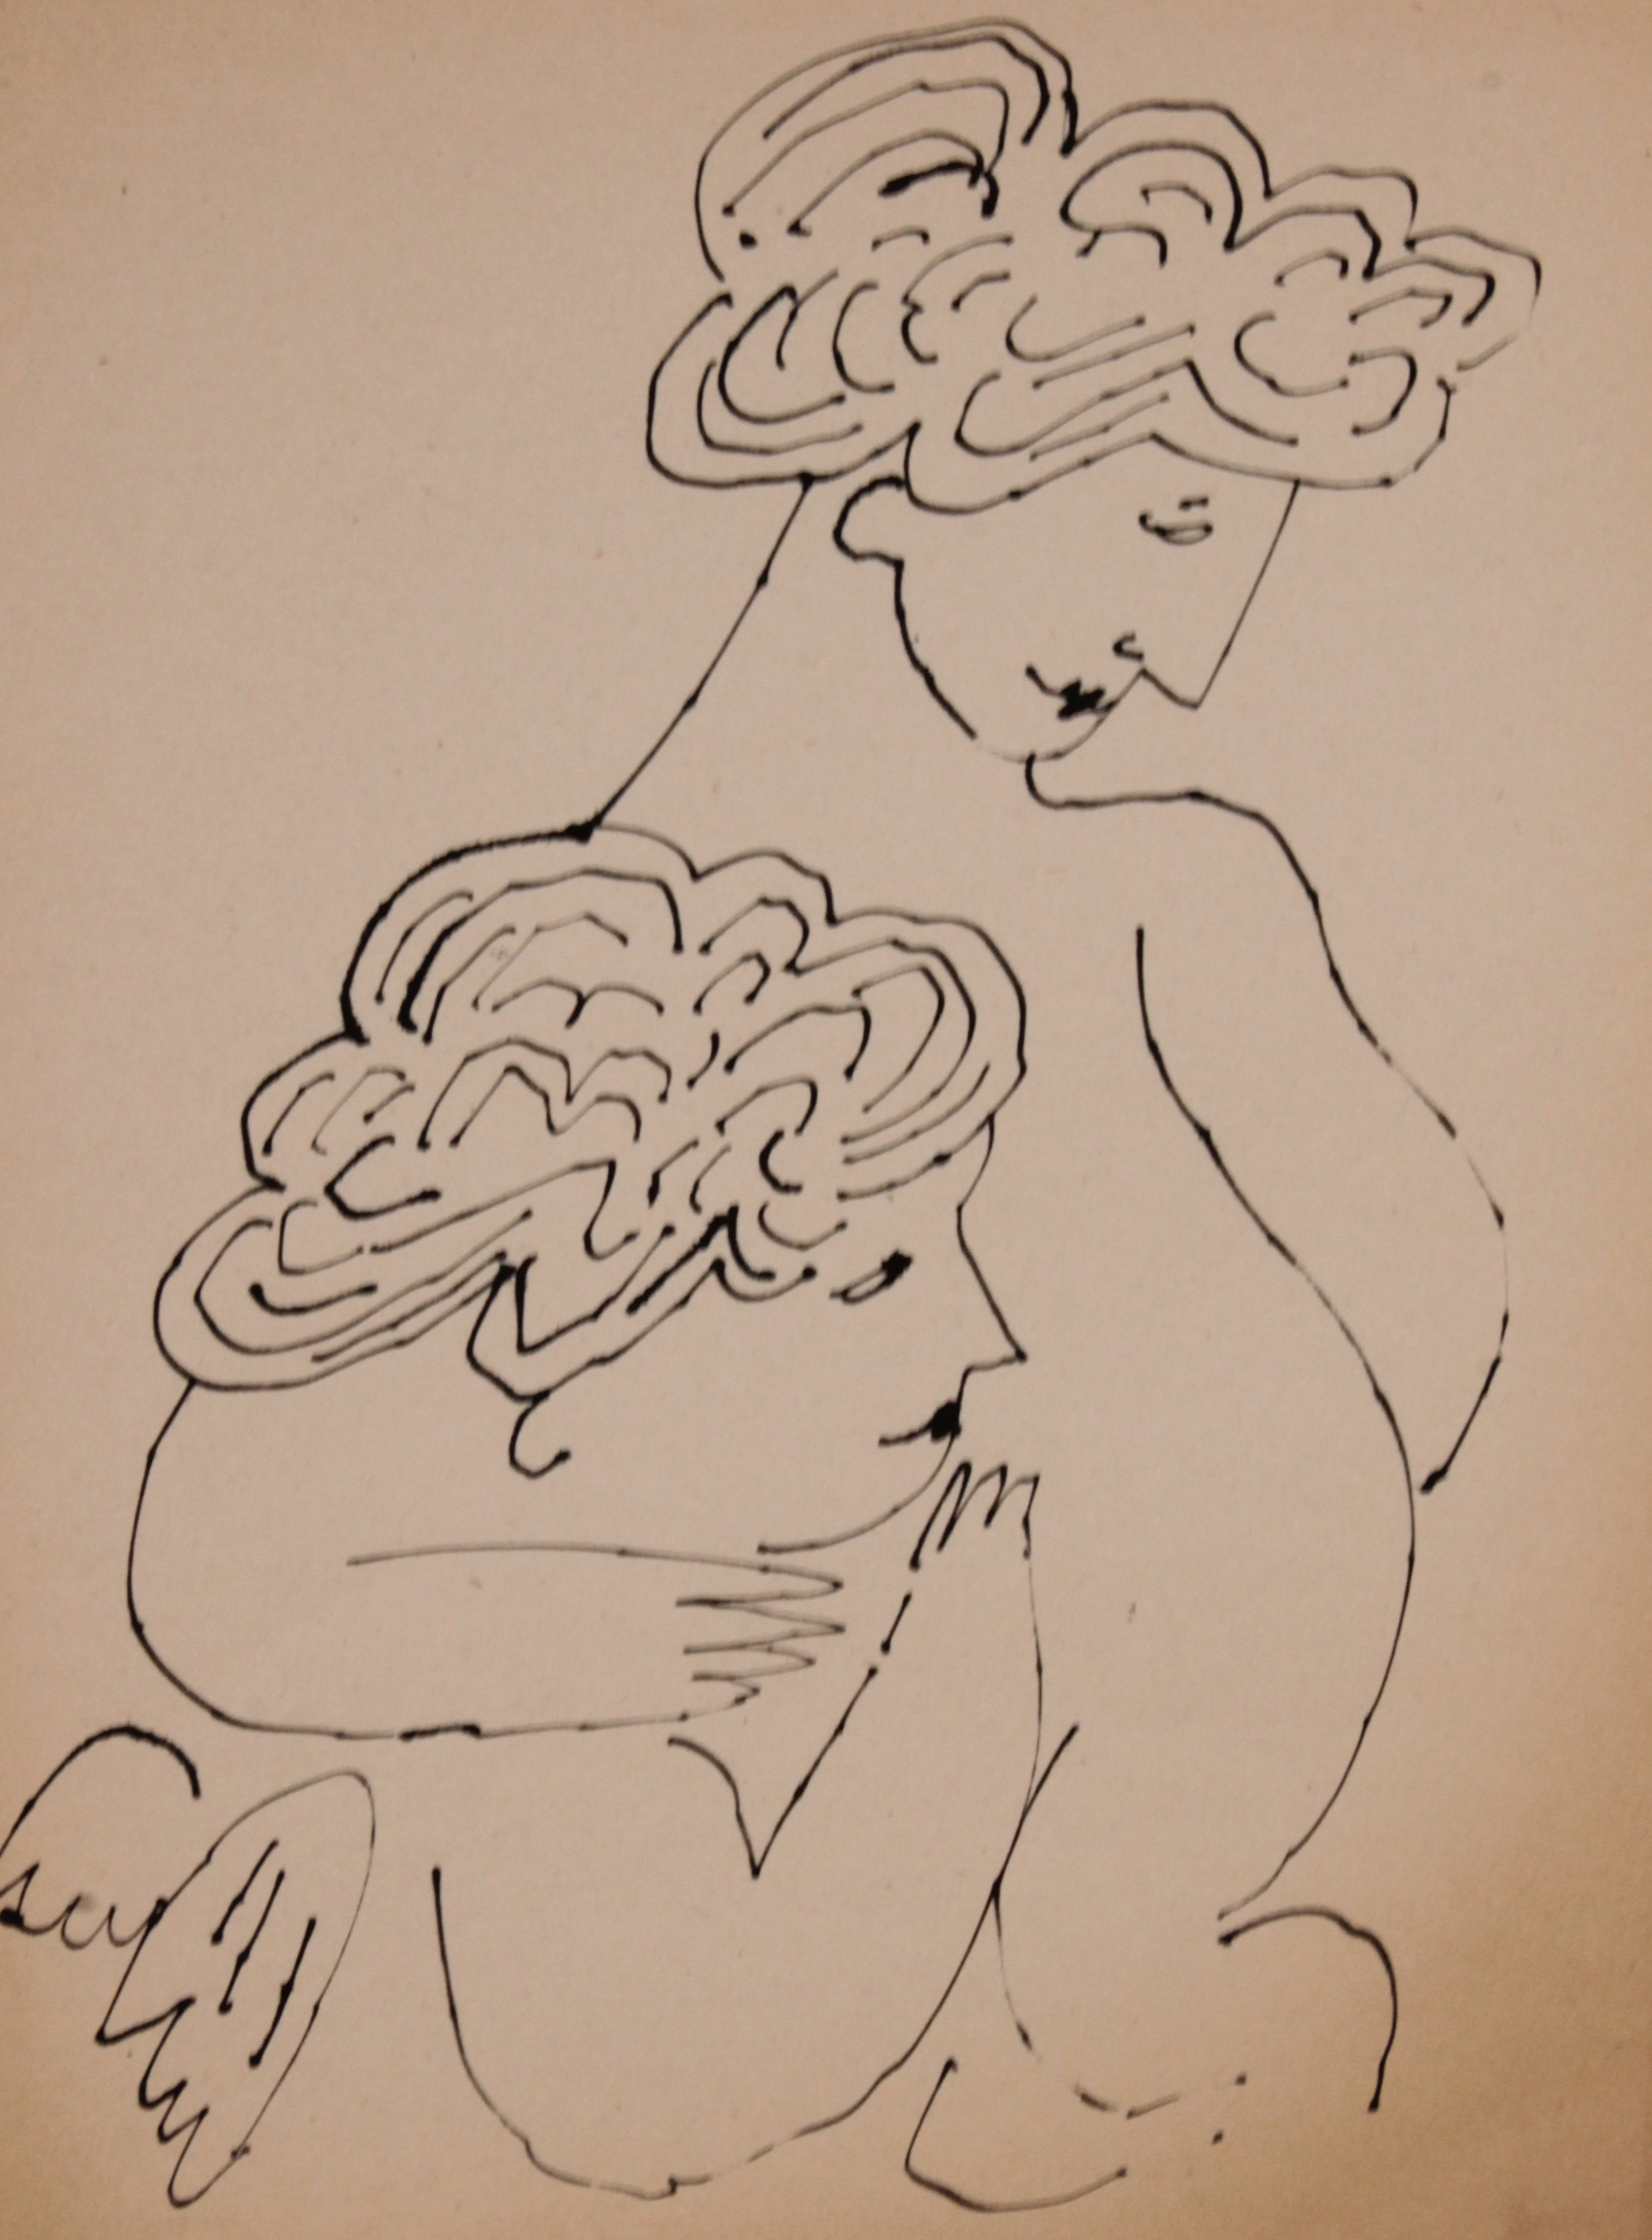 original china ink drawing on paper of two cherubs embracing by Andy Warhol